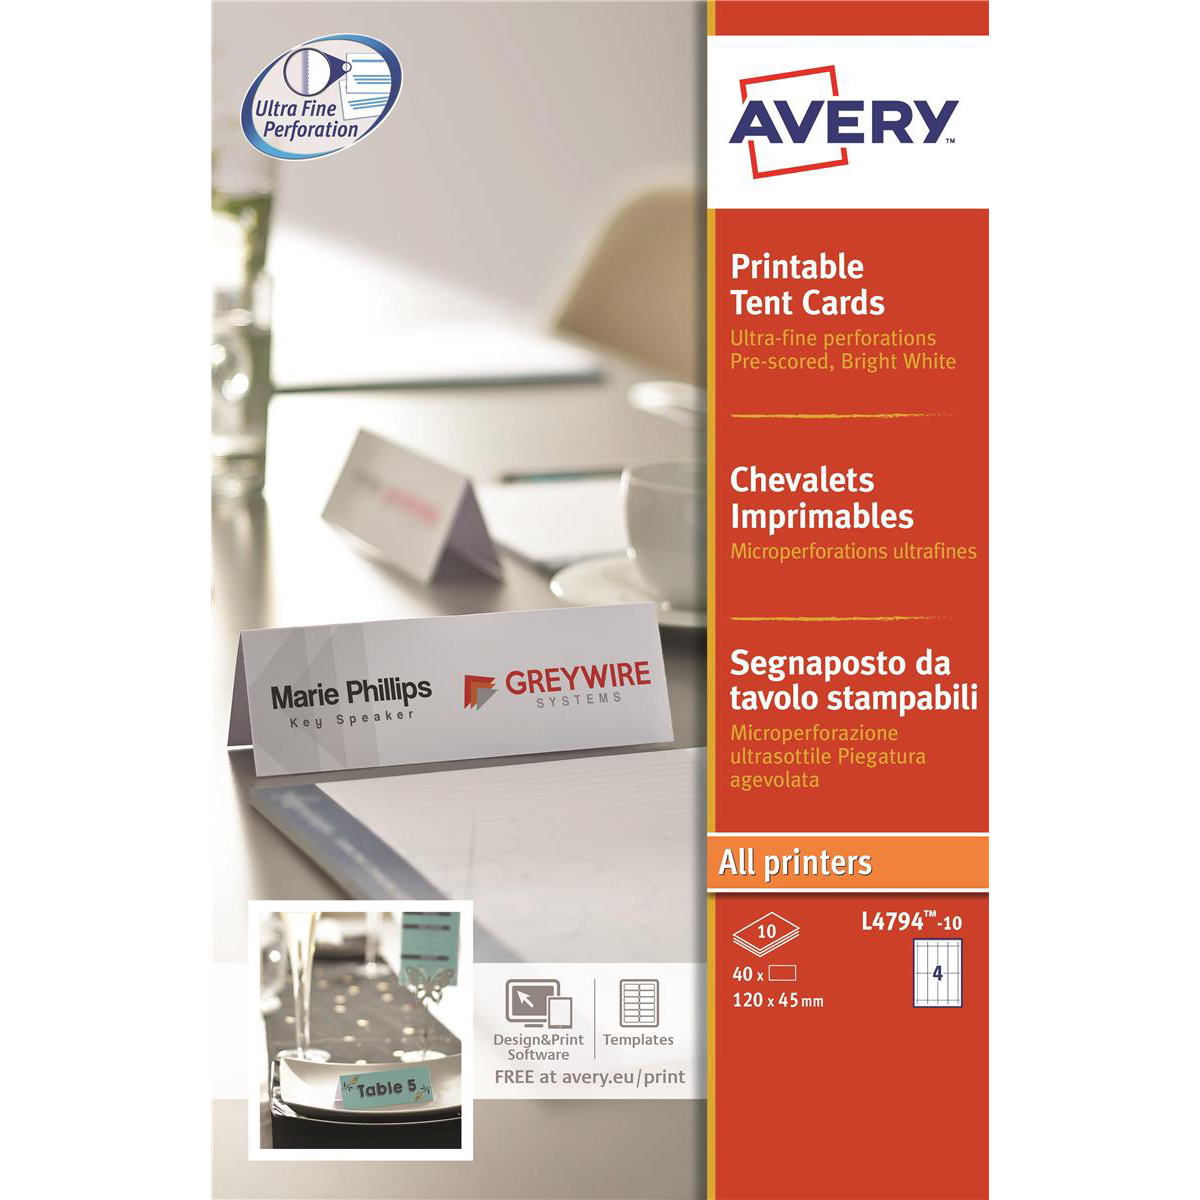 Avery Printable Business Tent Card 4 per Sheet 120x45mm 190gsm White Ref L4794-10 40 labels